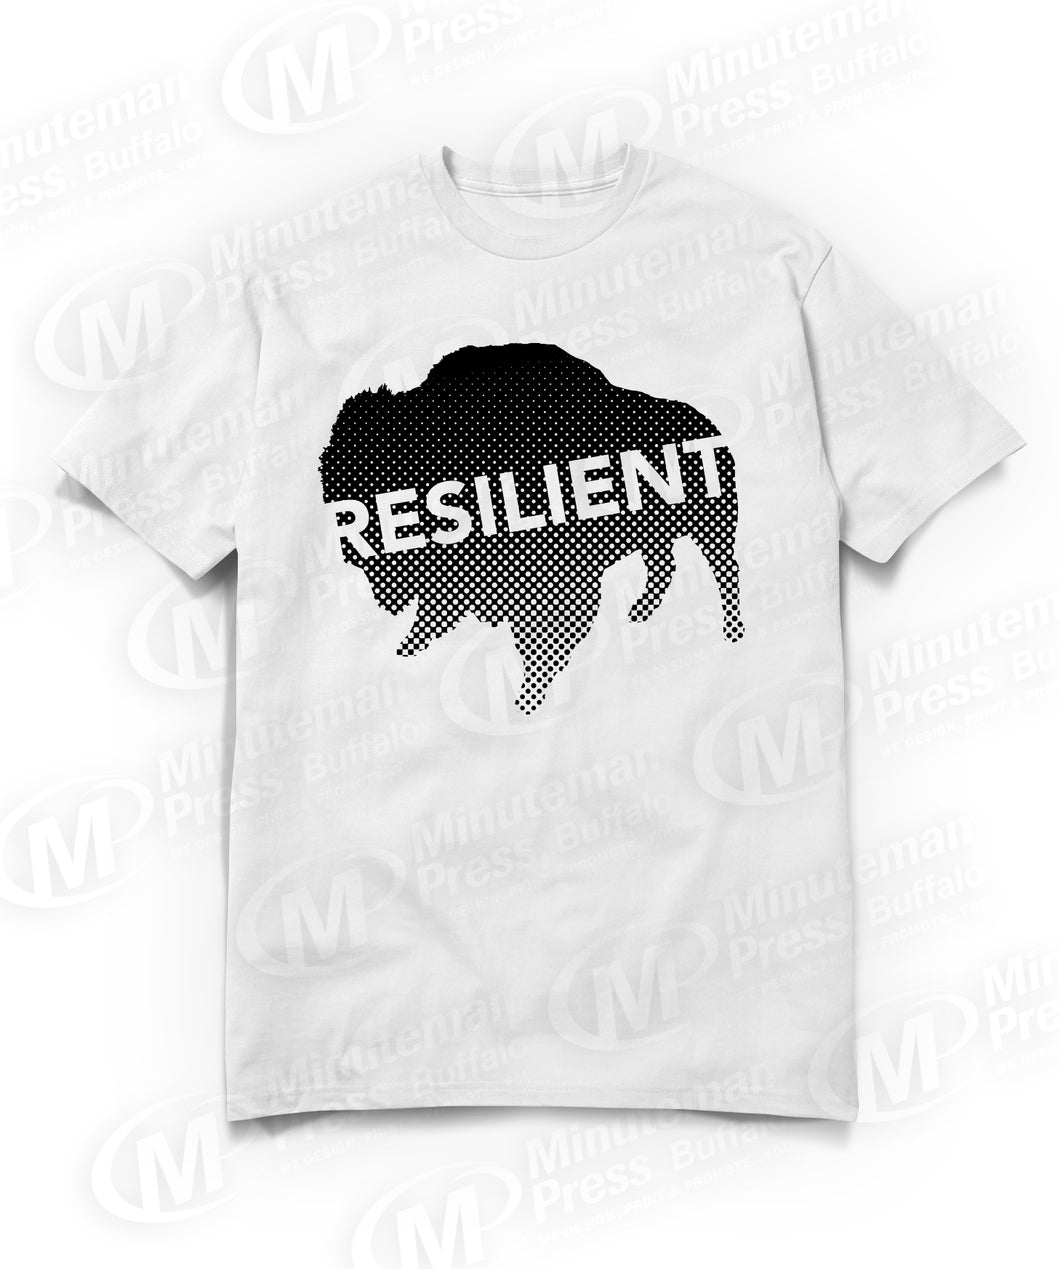 resilient text on black buffalo on white t-shirt